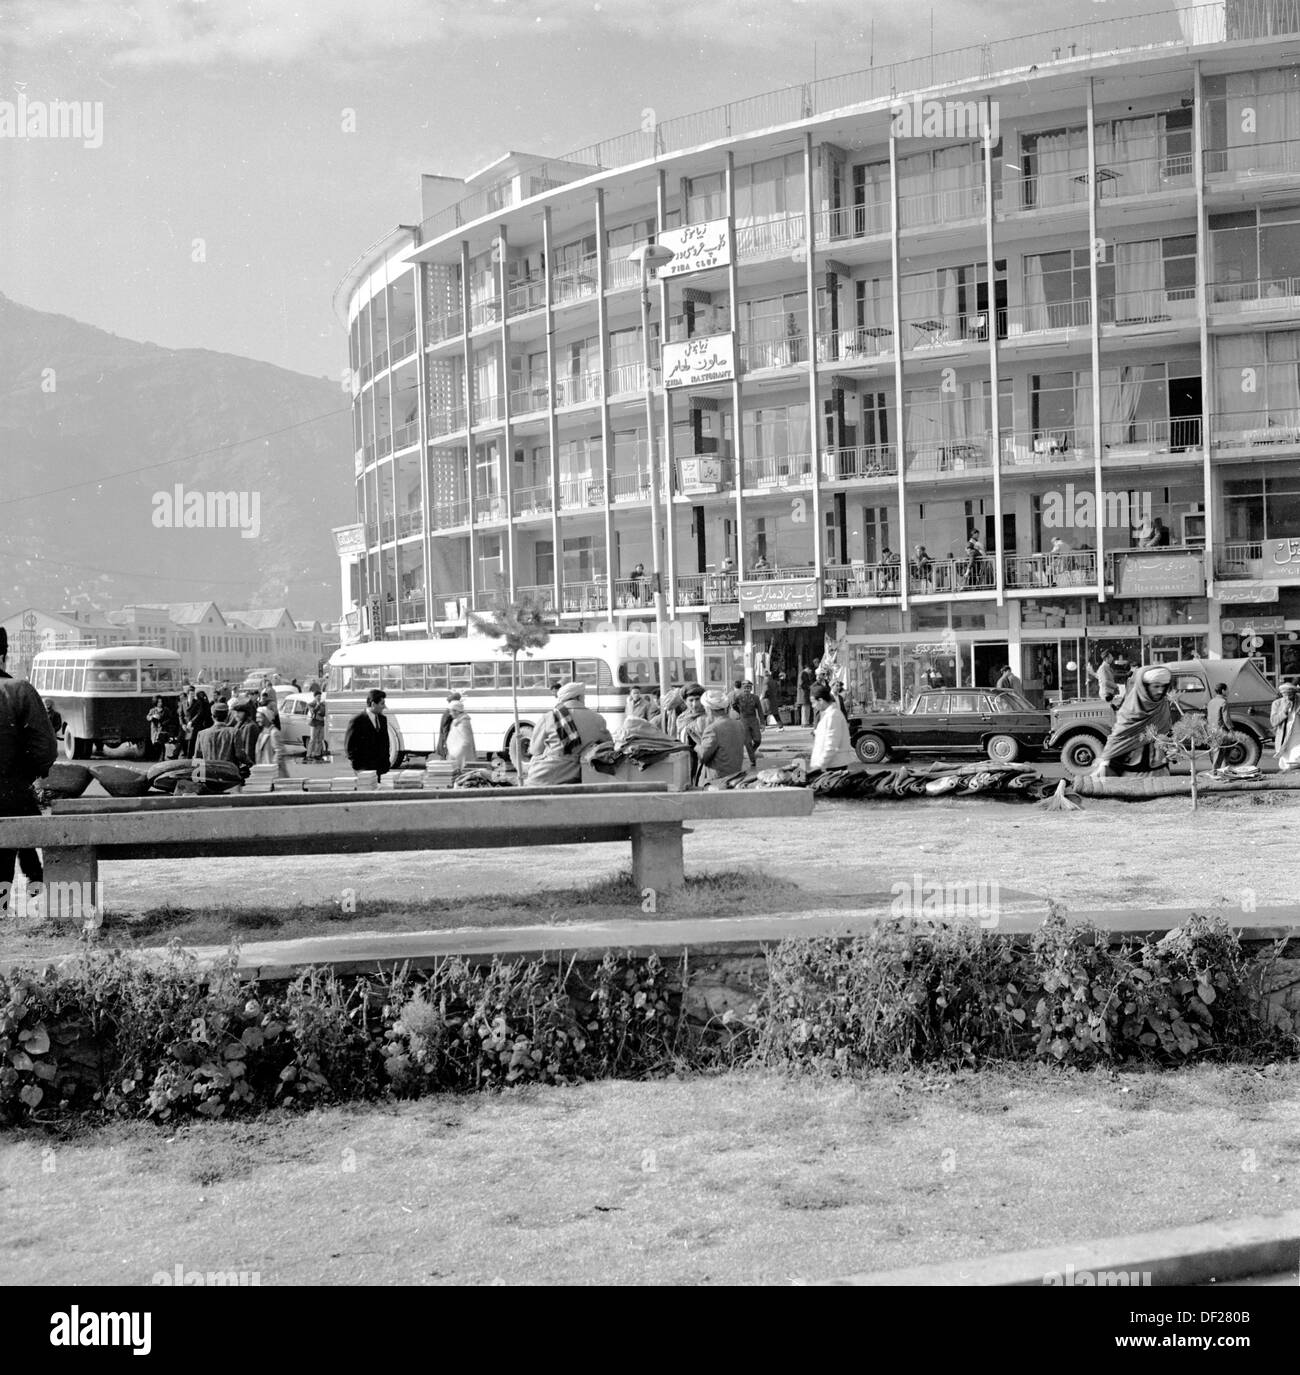 Historical picture from 1950s by J Allan Cash of a building and traffic in the capital city of Kabul, Afghanistan - Stock Image